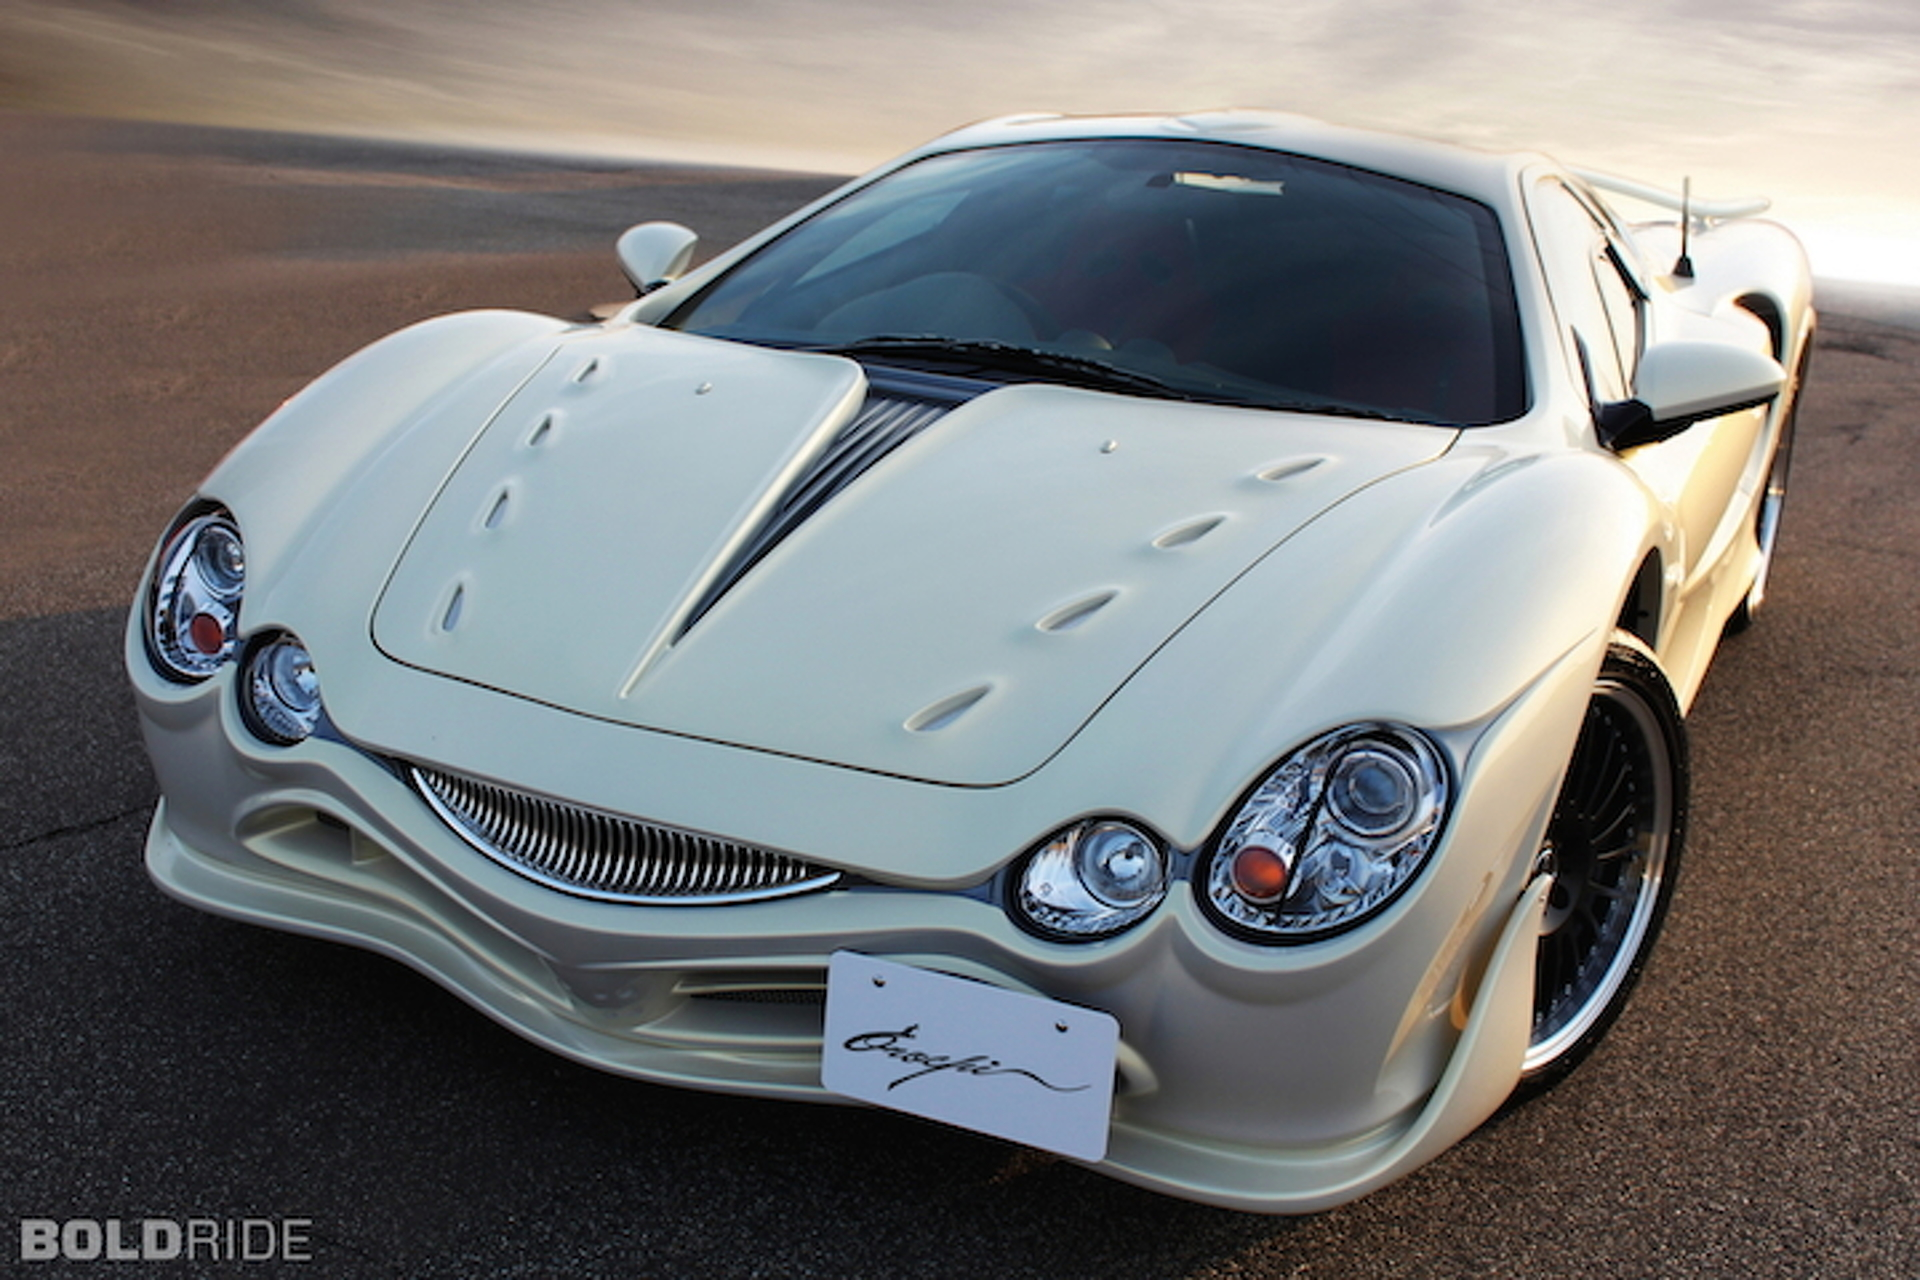 Mitsuoka is Finally Retiring the Painful-Looking Orochi